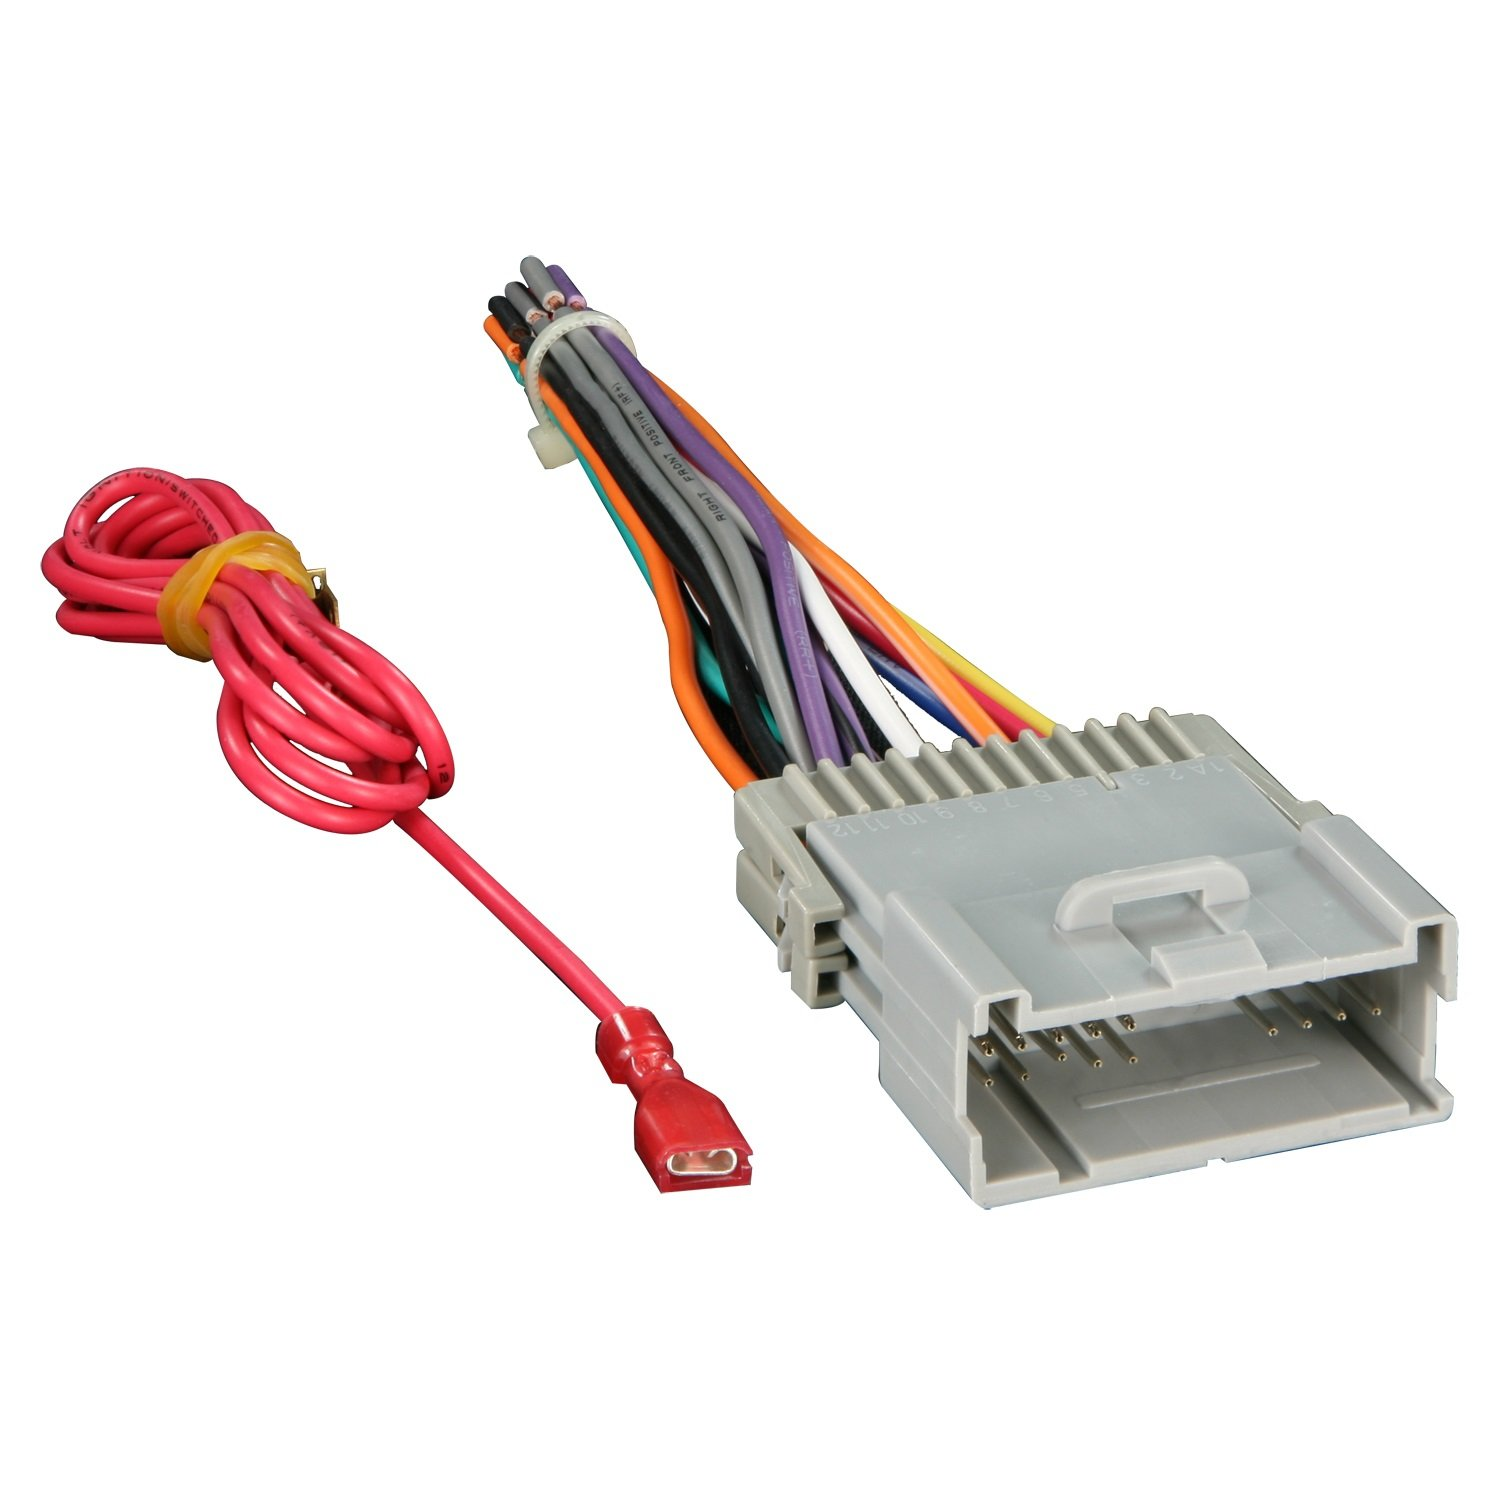 61eewxp9orL._SL1500_ amazon com metra 70 2003 radio wiring harness for gm 98 08 how to wire stereo without harness 95 camry at panicattacktreatment.co